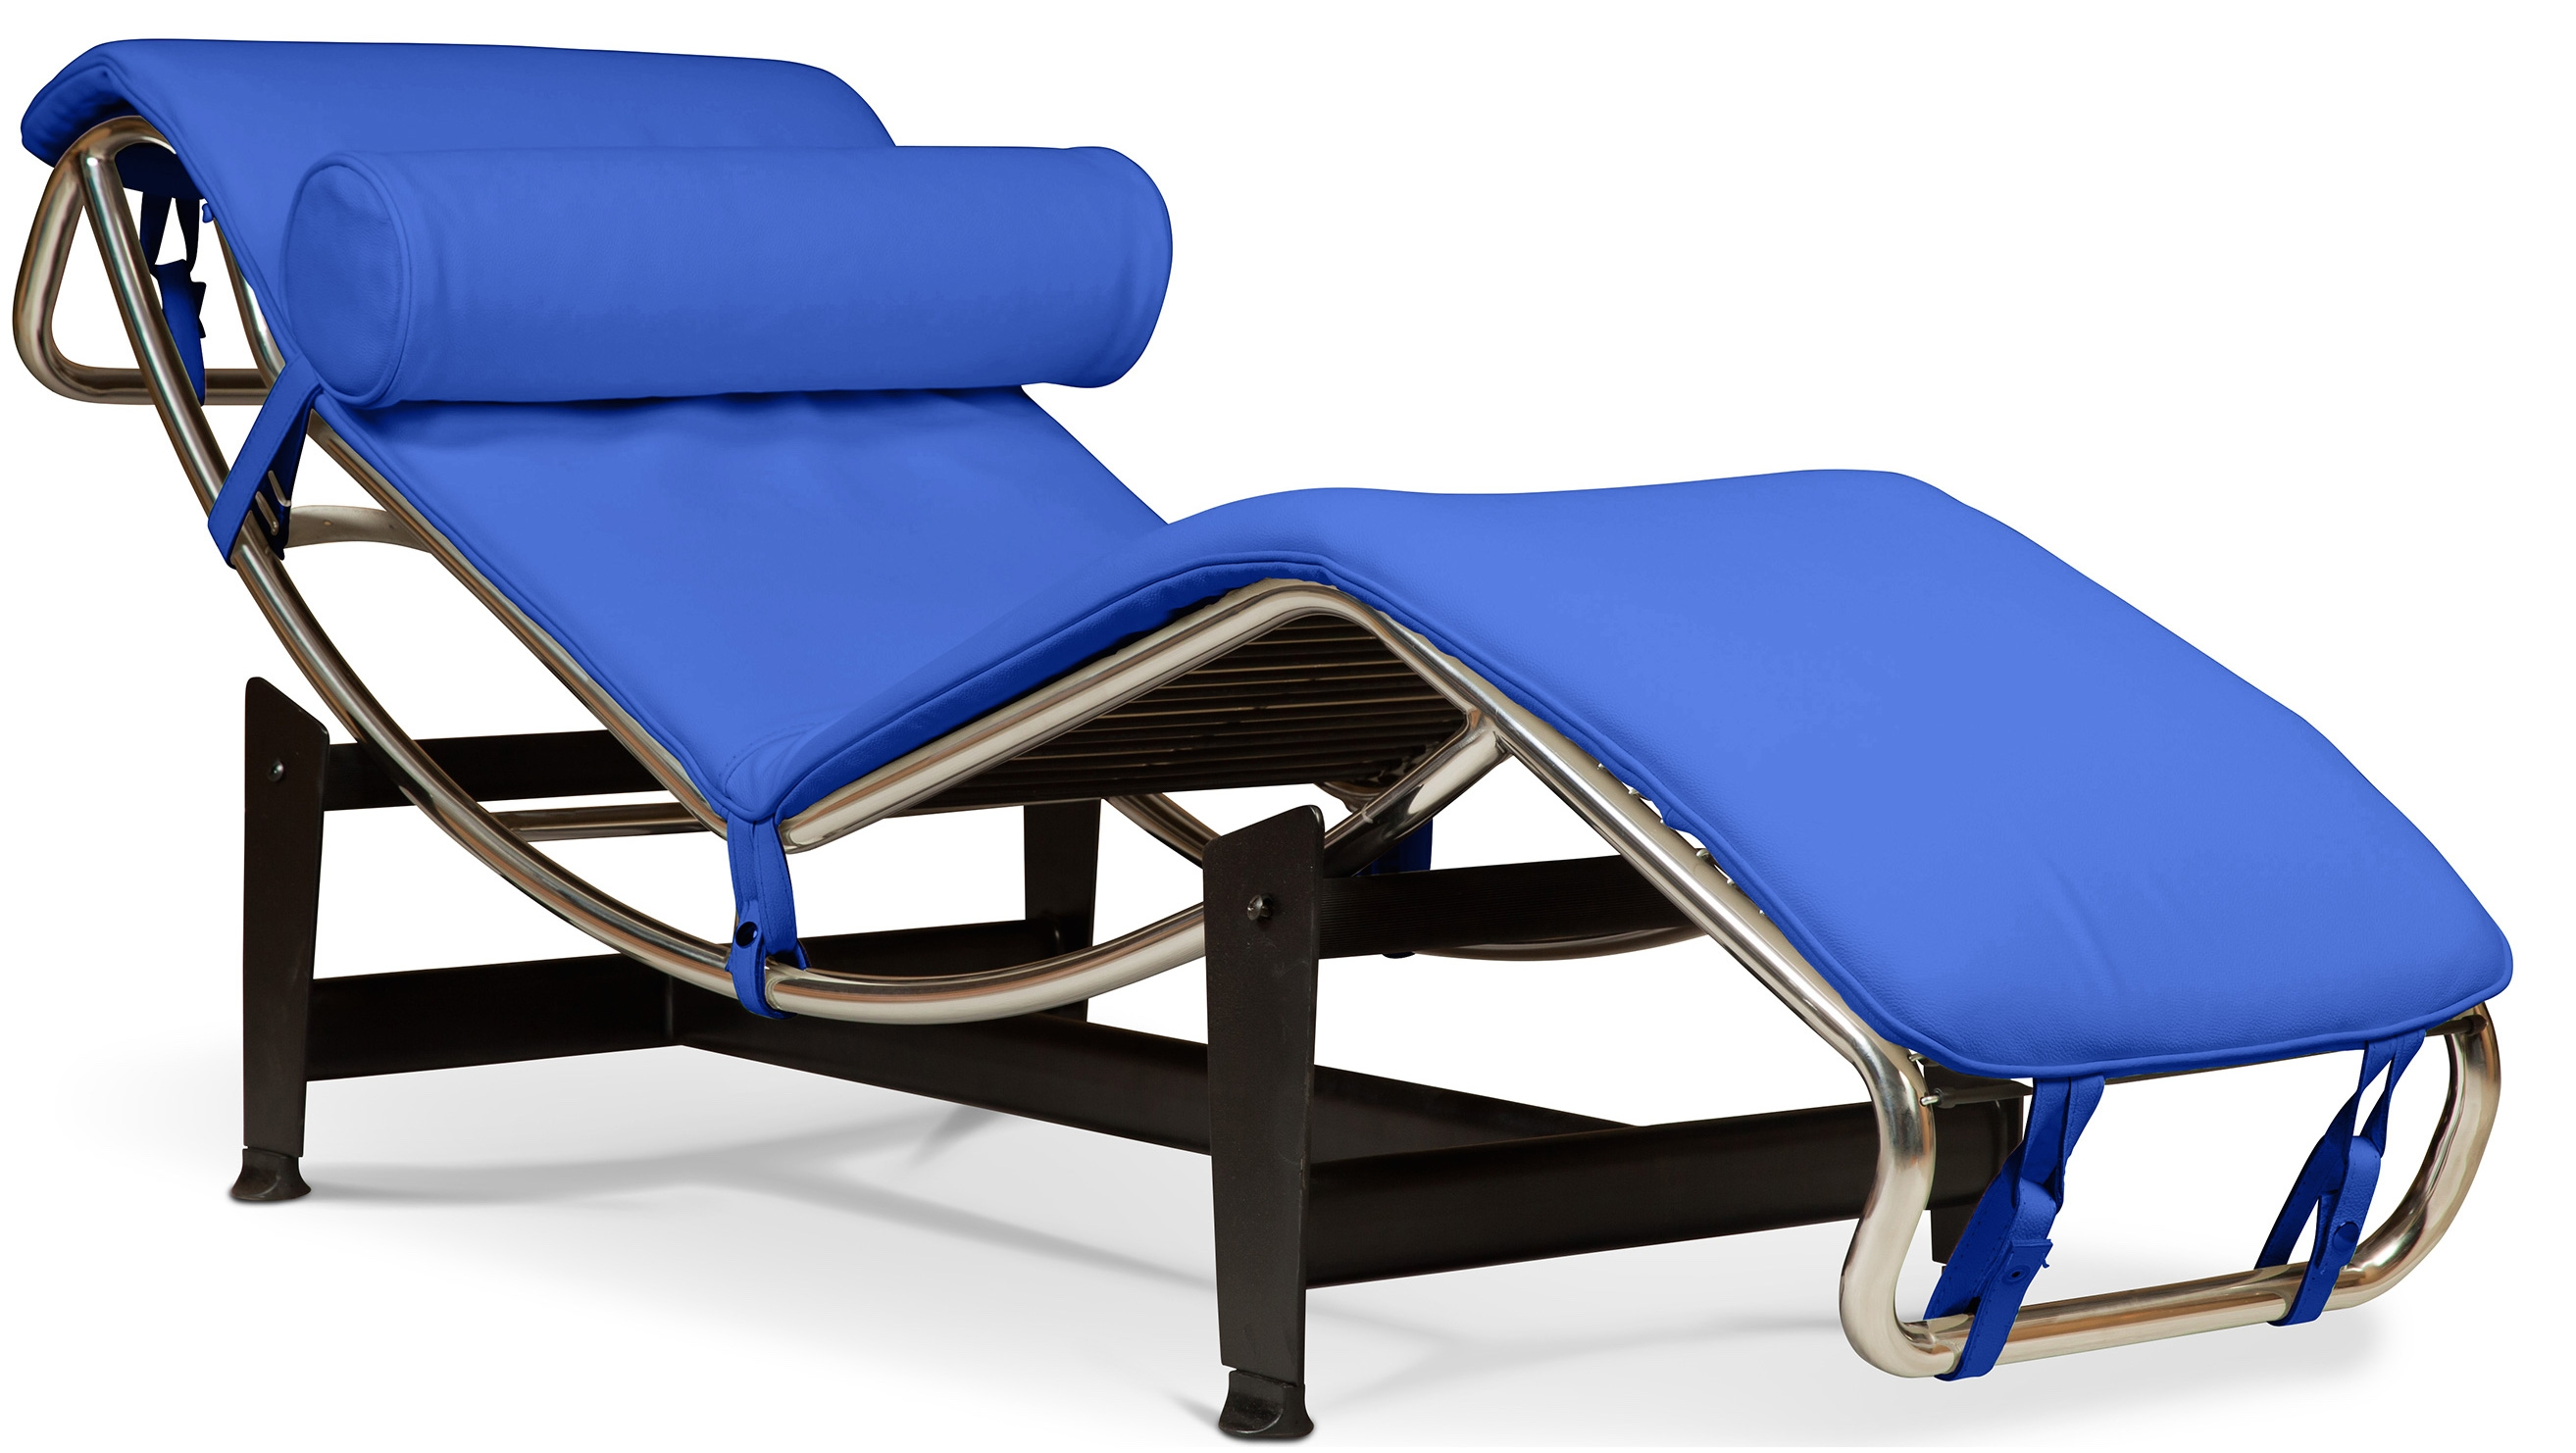 chaise longue simili bleu inspir lc4 de le corbusier. Black Bedroom Furniture Sets. Home Design Ideas